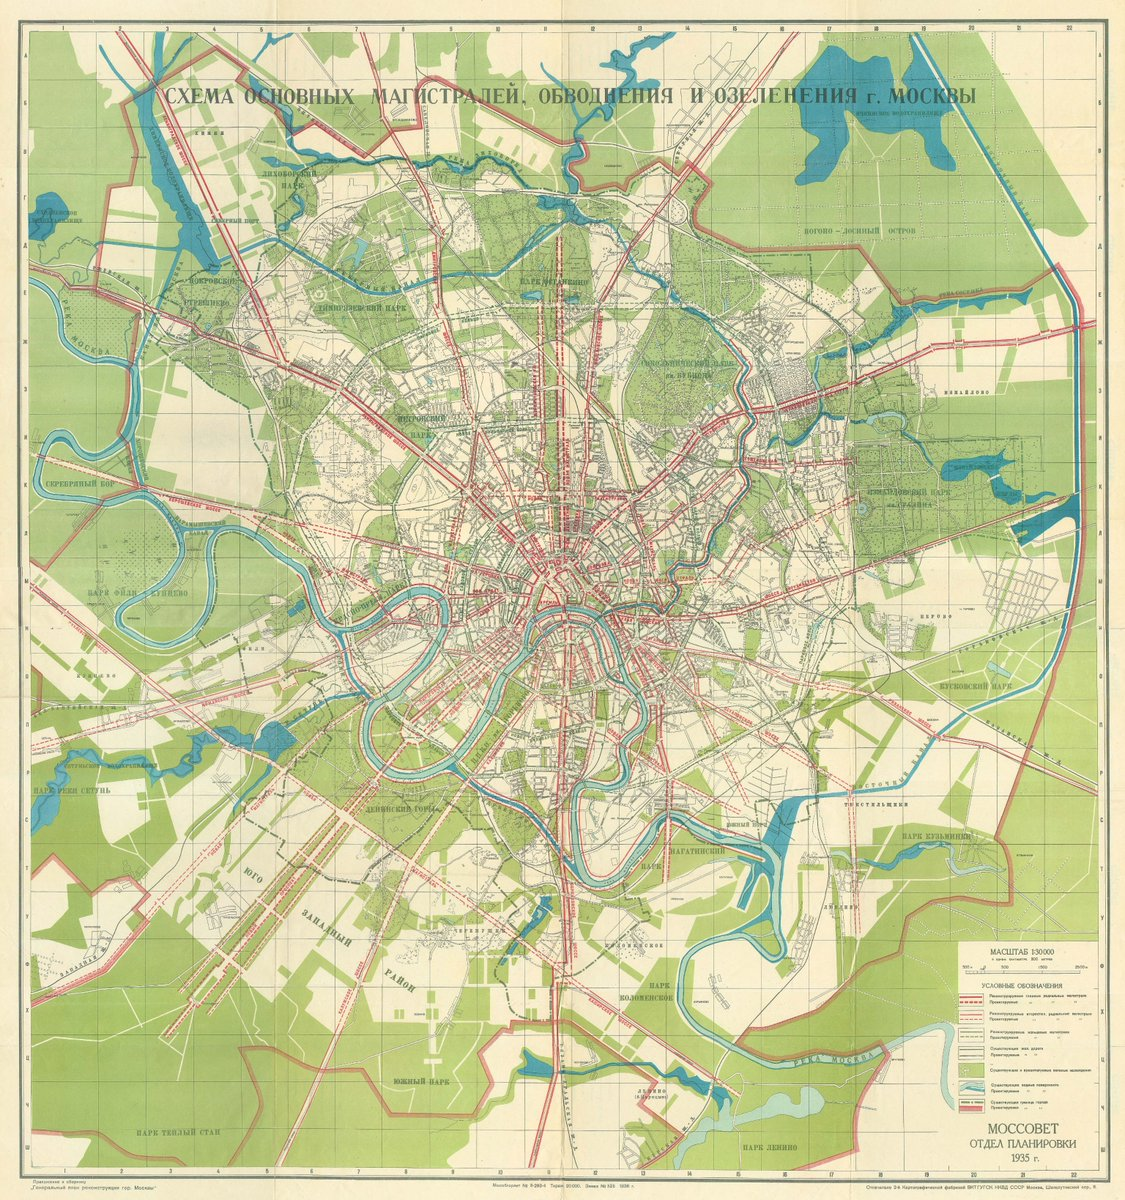 Moscow city planning map 1935 #moscow #map #ussr #москва pic.twitter.com/GqIfqeqYgq